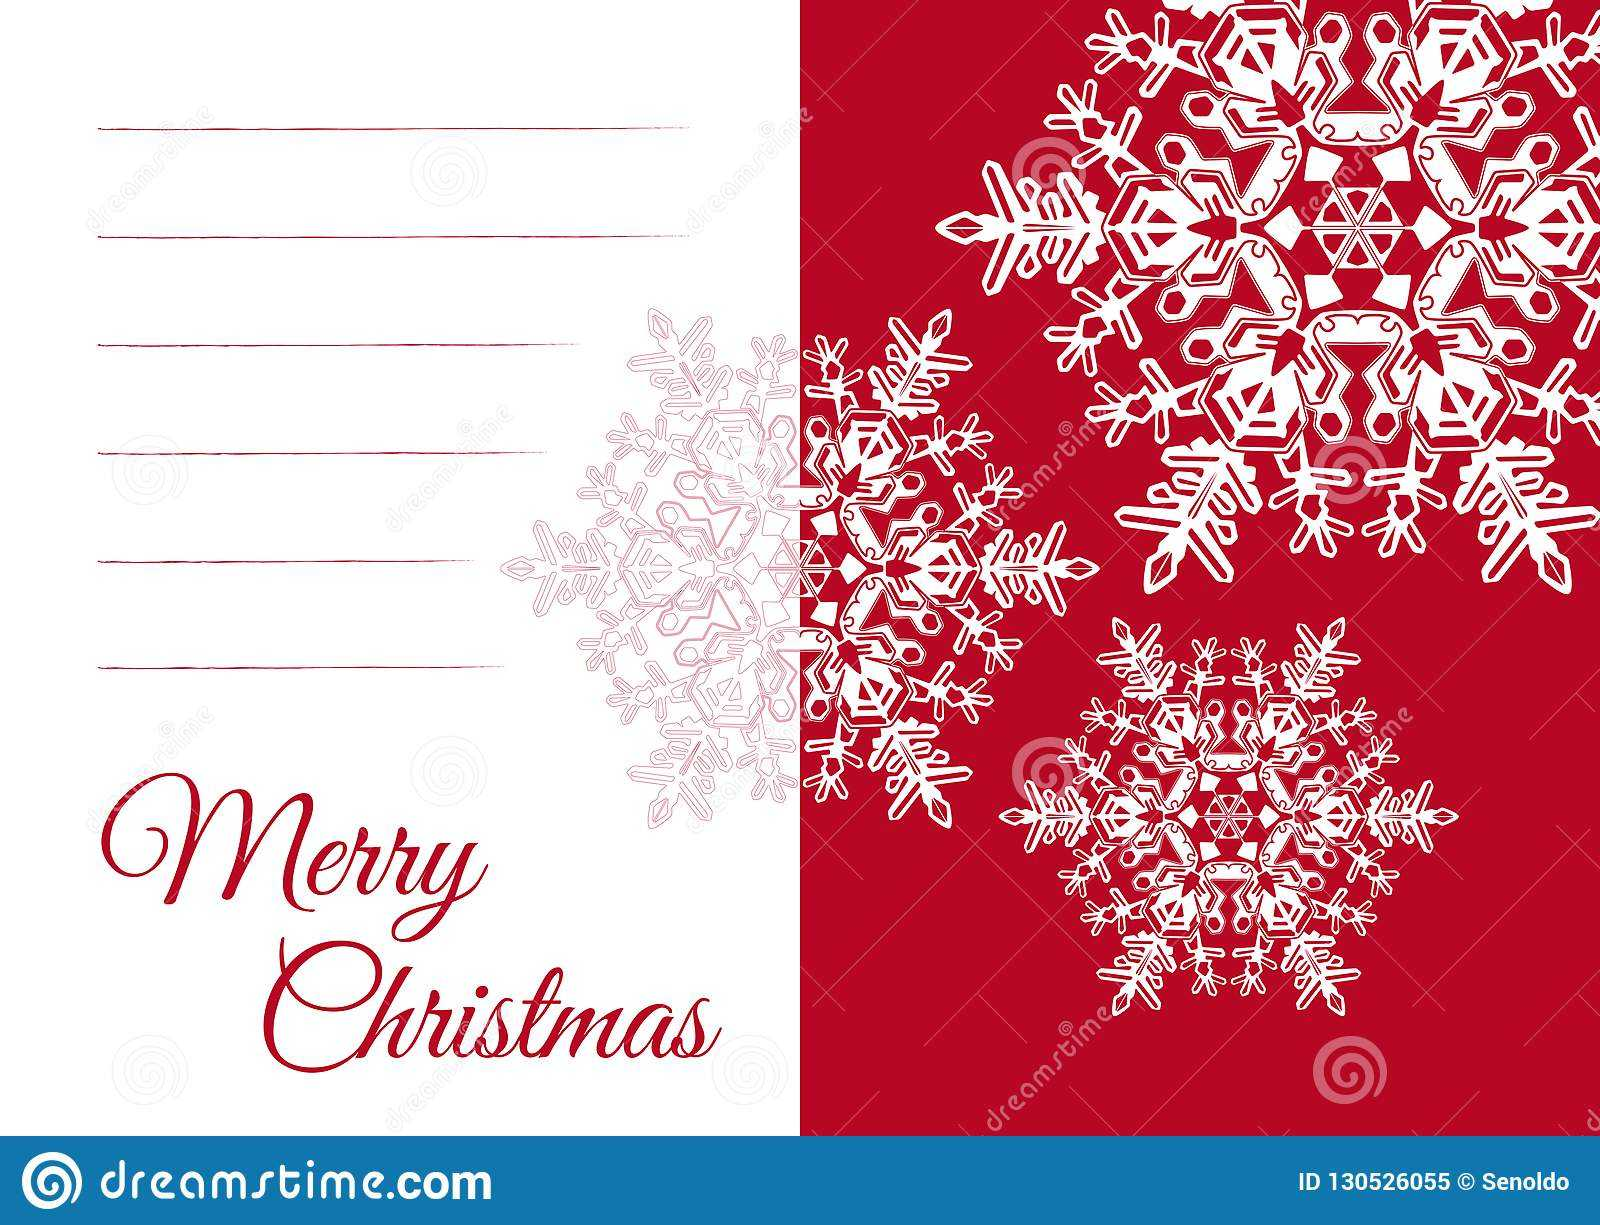 Christmas Greeting Card Template With Blank Text Field Stock With Blank Christmas Card Templates Free